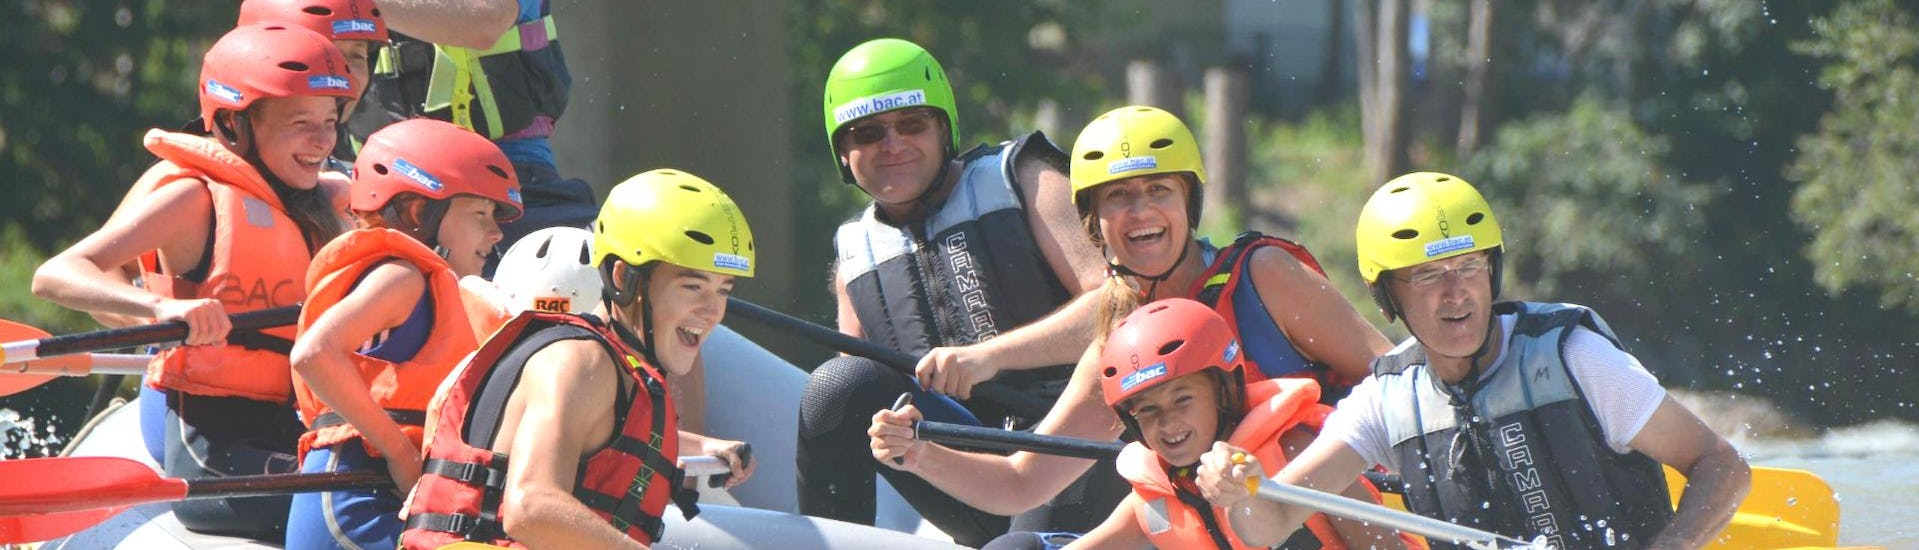 """A family is tackling cascades on a raft during the Rafting """"Classic"""" - Enns with the help of an experienced rafting guide from best adventure company."""